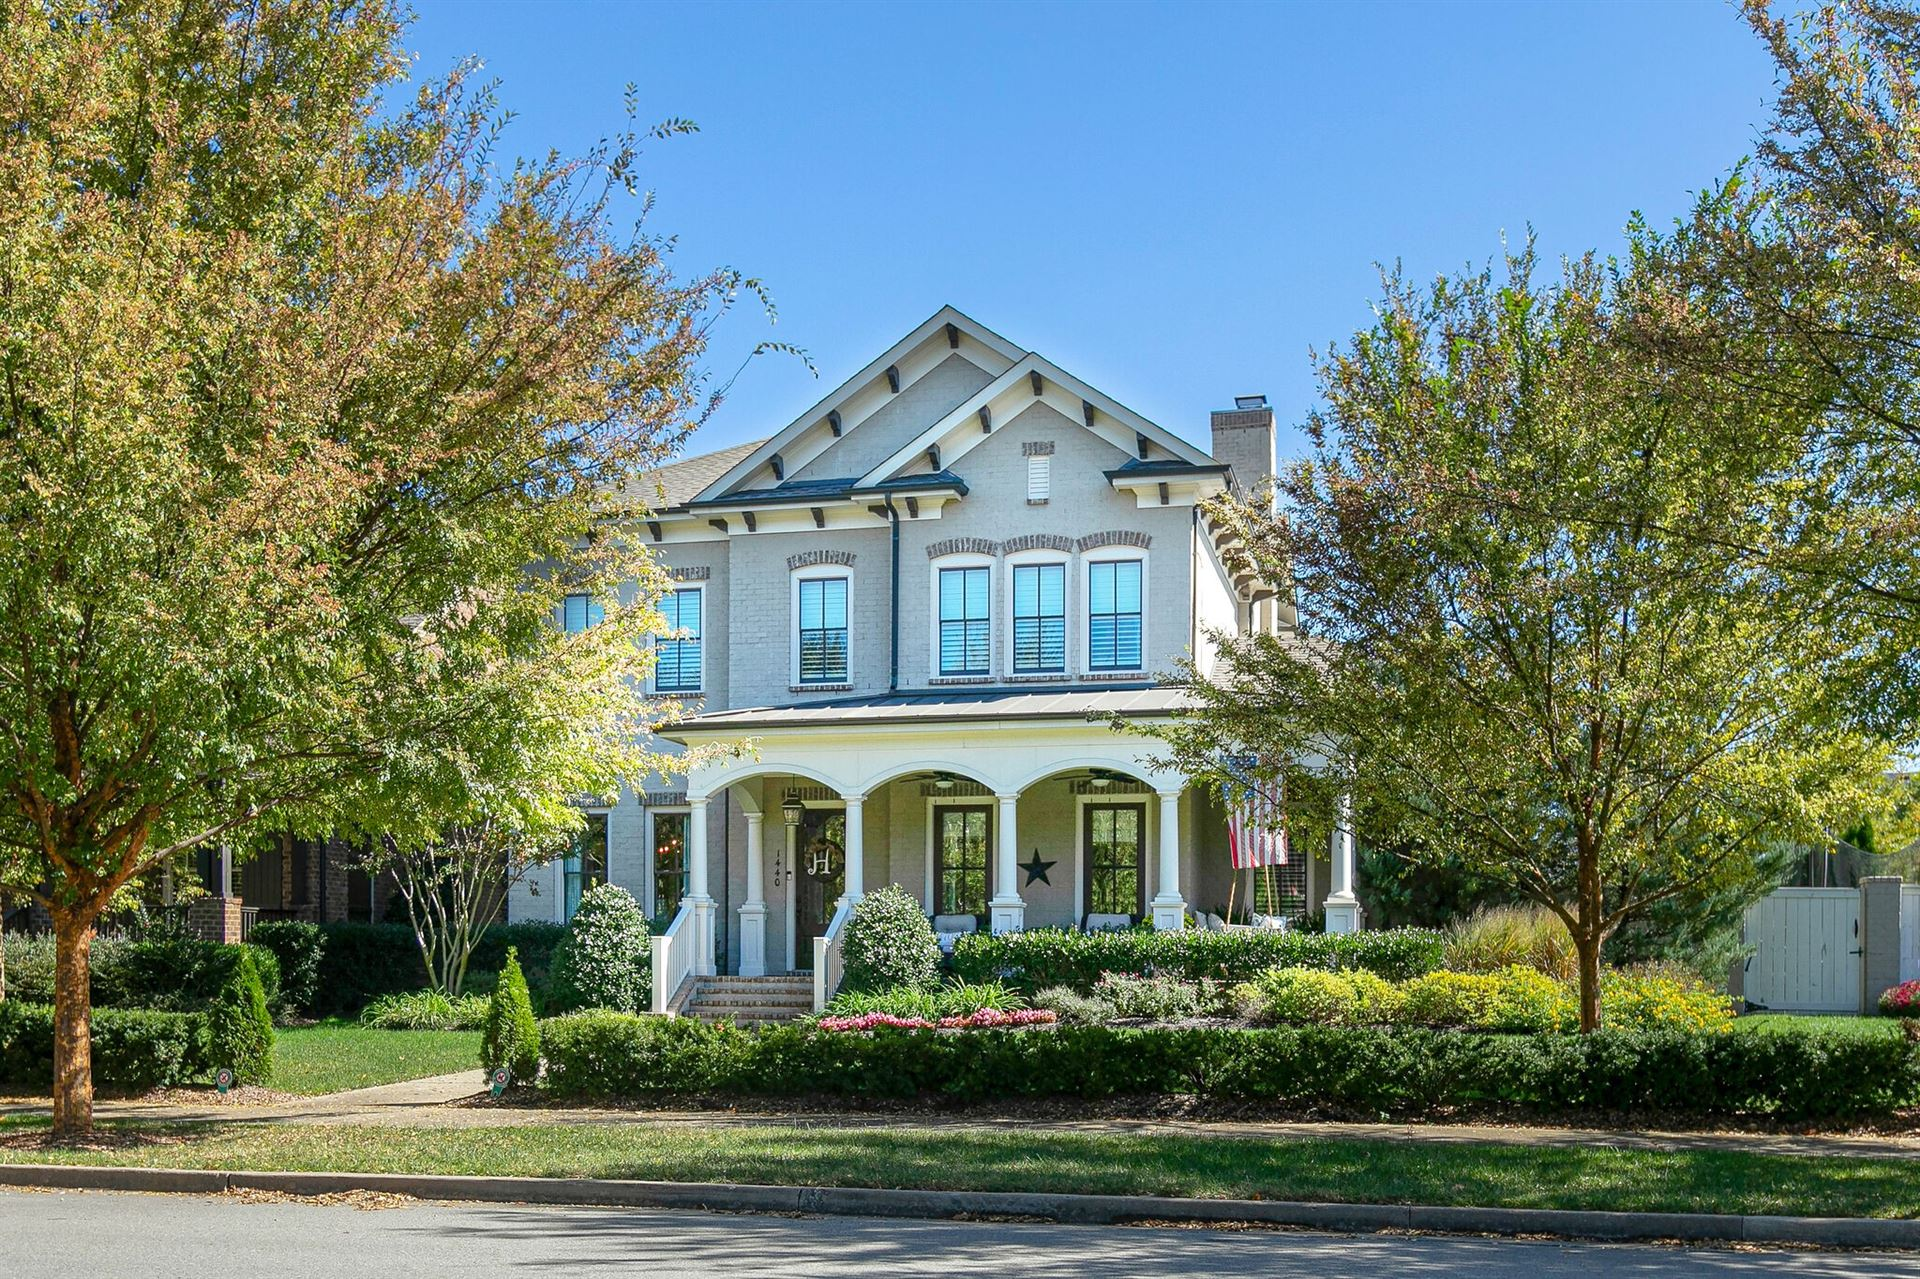 1440 Westhaven Blvd, Franklin, TN 37064 - MLS#: 2202340